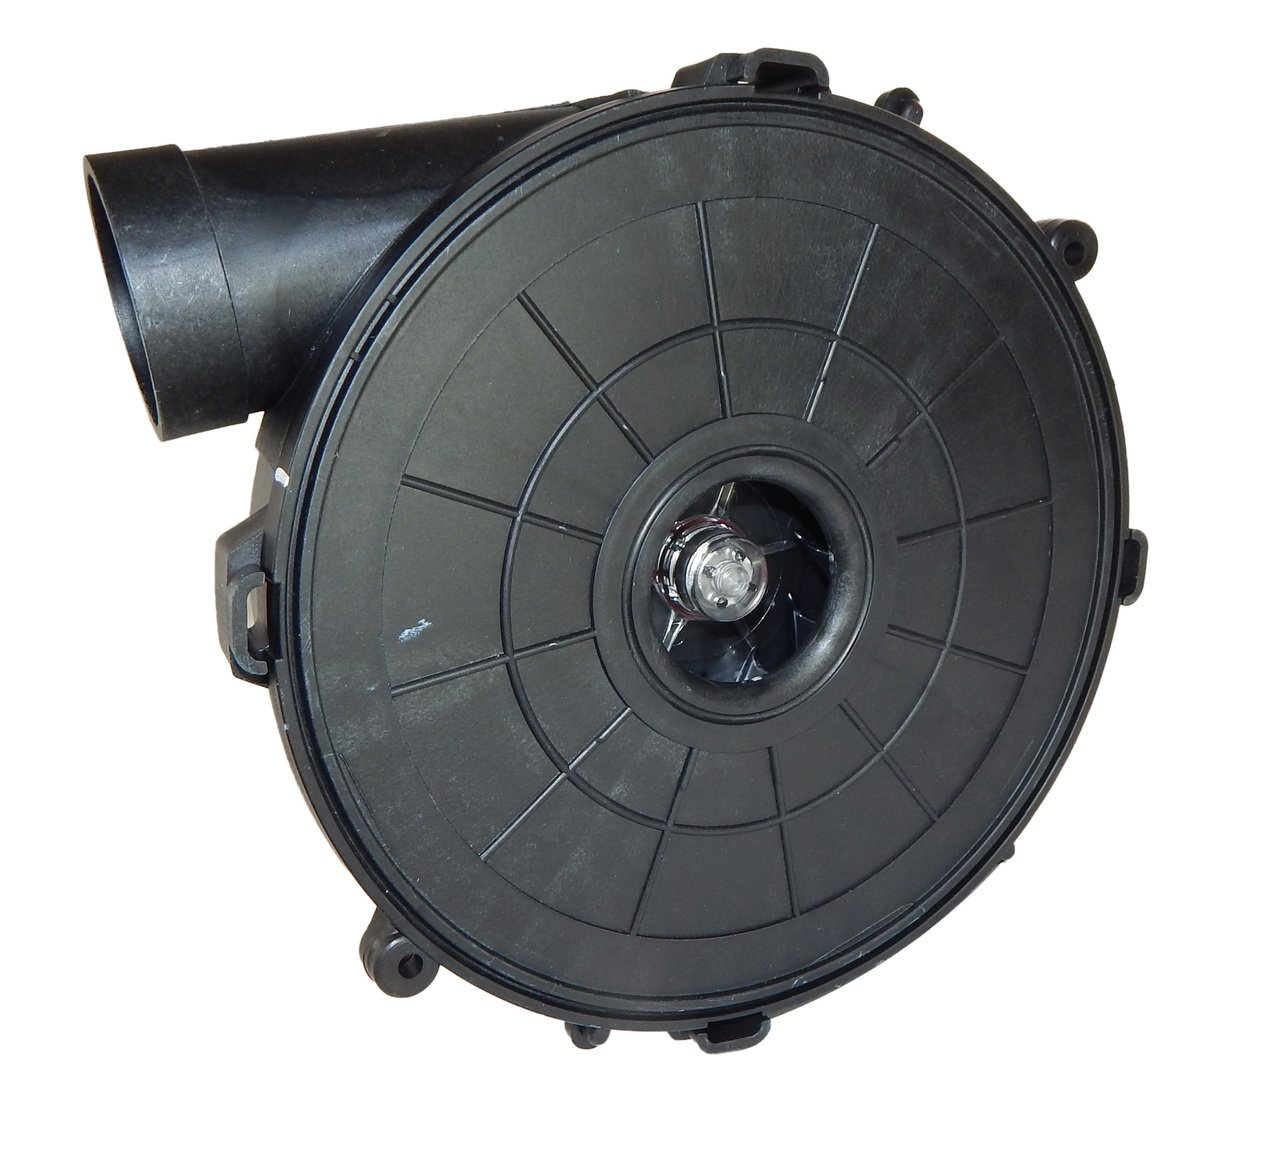 Fasco - A992 - Round Shaded Pole OEM Specialty Blower, Flange: No, Wheel Dia: 8, 115VAC